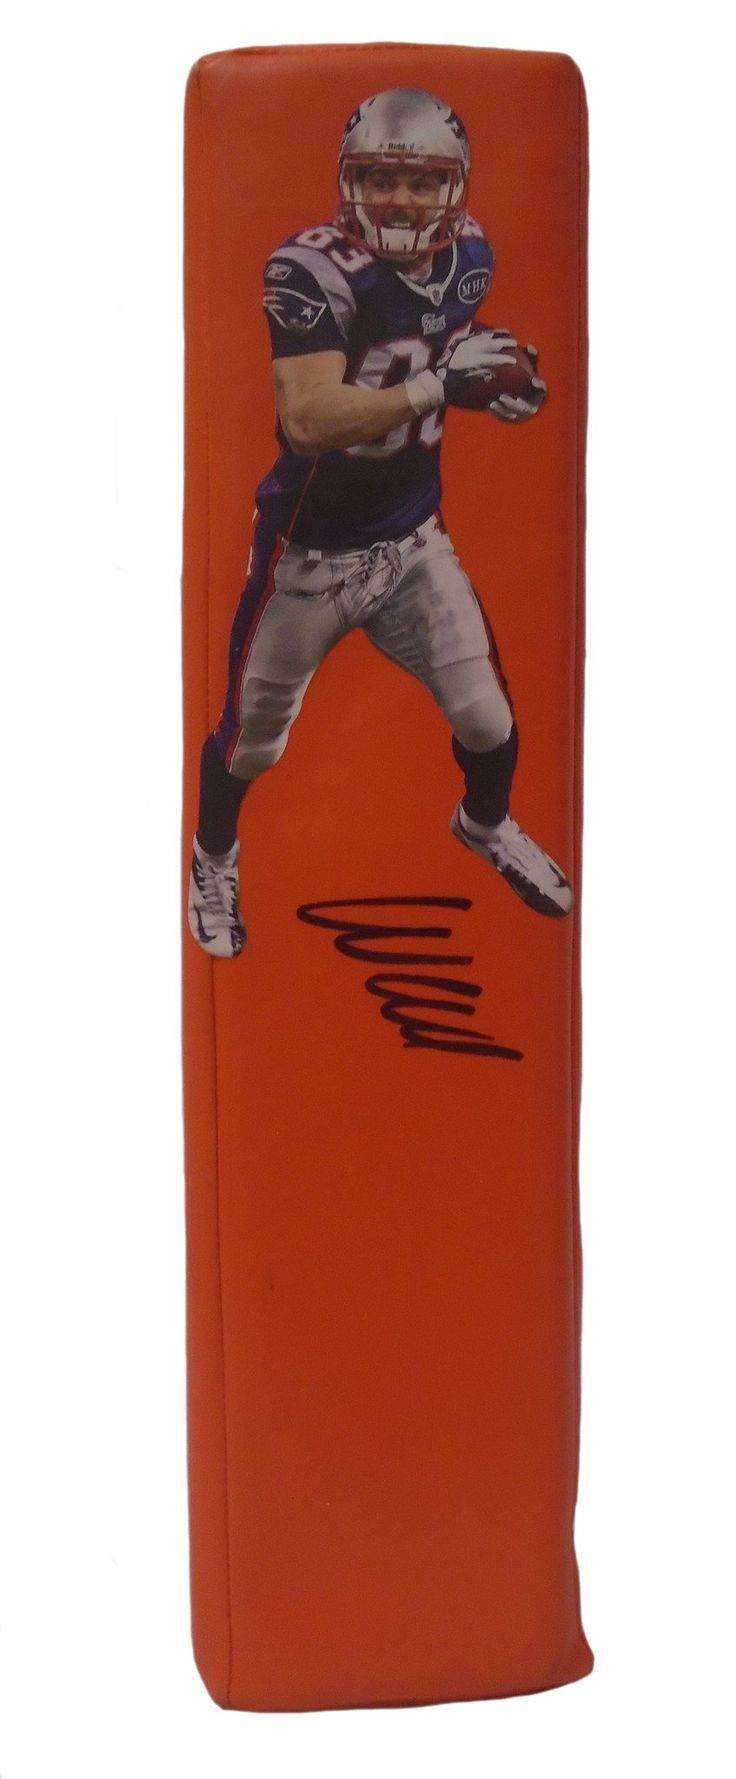 Wes Welker Autographed New England Patriots Football End Zone Touchdown Pylon, Proof. This is a brand-new custom Wes Welker signed New England Patriots Rawlings football end zone pylon.  This pylon measures 3 1/2 inches (Width)  X 3 1/2 inches (Length) X 13 1/2 inches (Height).  Wes signed the pylon in black sharpie. Check out the photo of Wes signing for us. ** Proof photo is included for free with purchase. Please click on images to enlarge. Please browse our website for additional NFL…